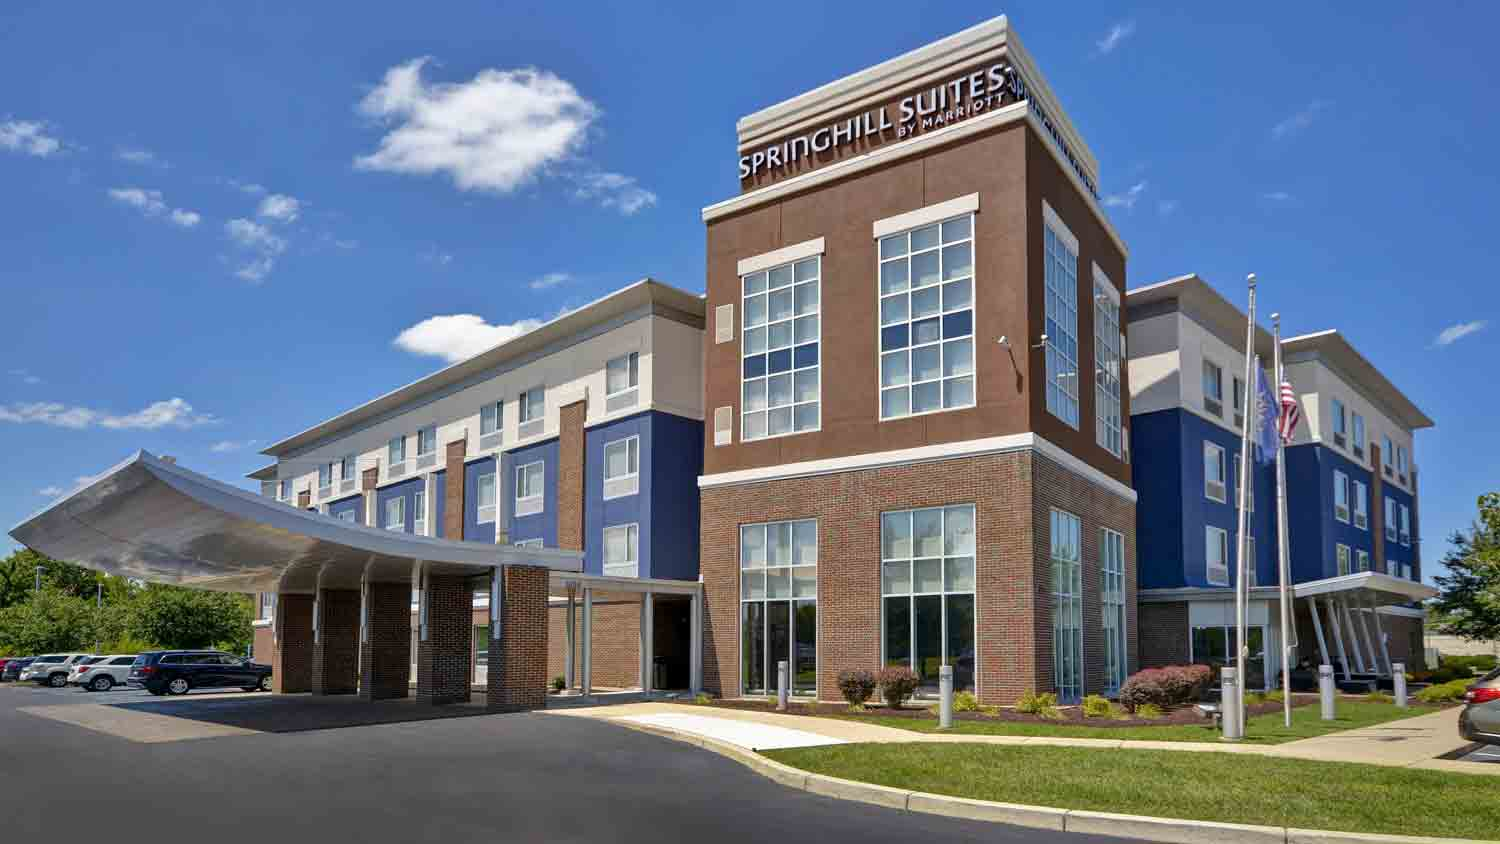 Springhill Suites - Indianapolis Airport Plainfield